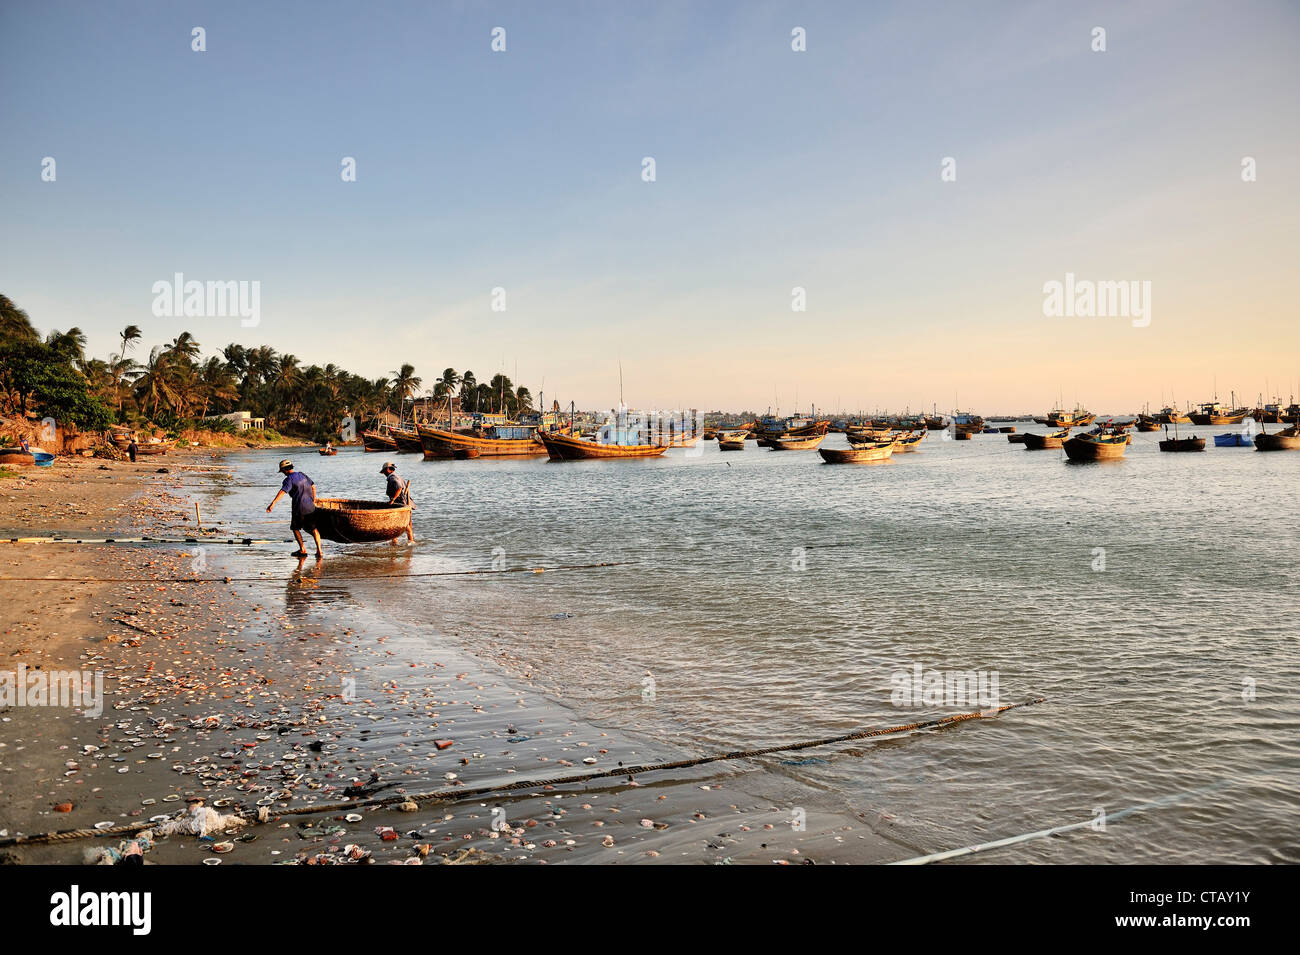 Fishers carry their small boat to the beach, fishing boats, fishing village, South China Sea, Mui Ne, Binh Thuan, - Stock Image